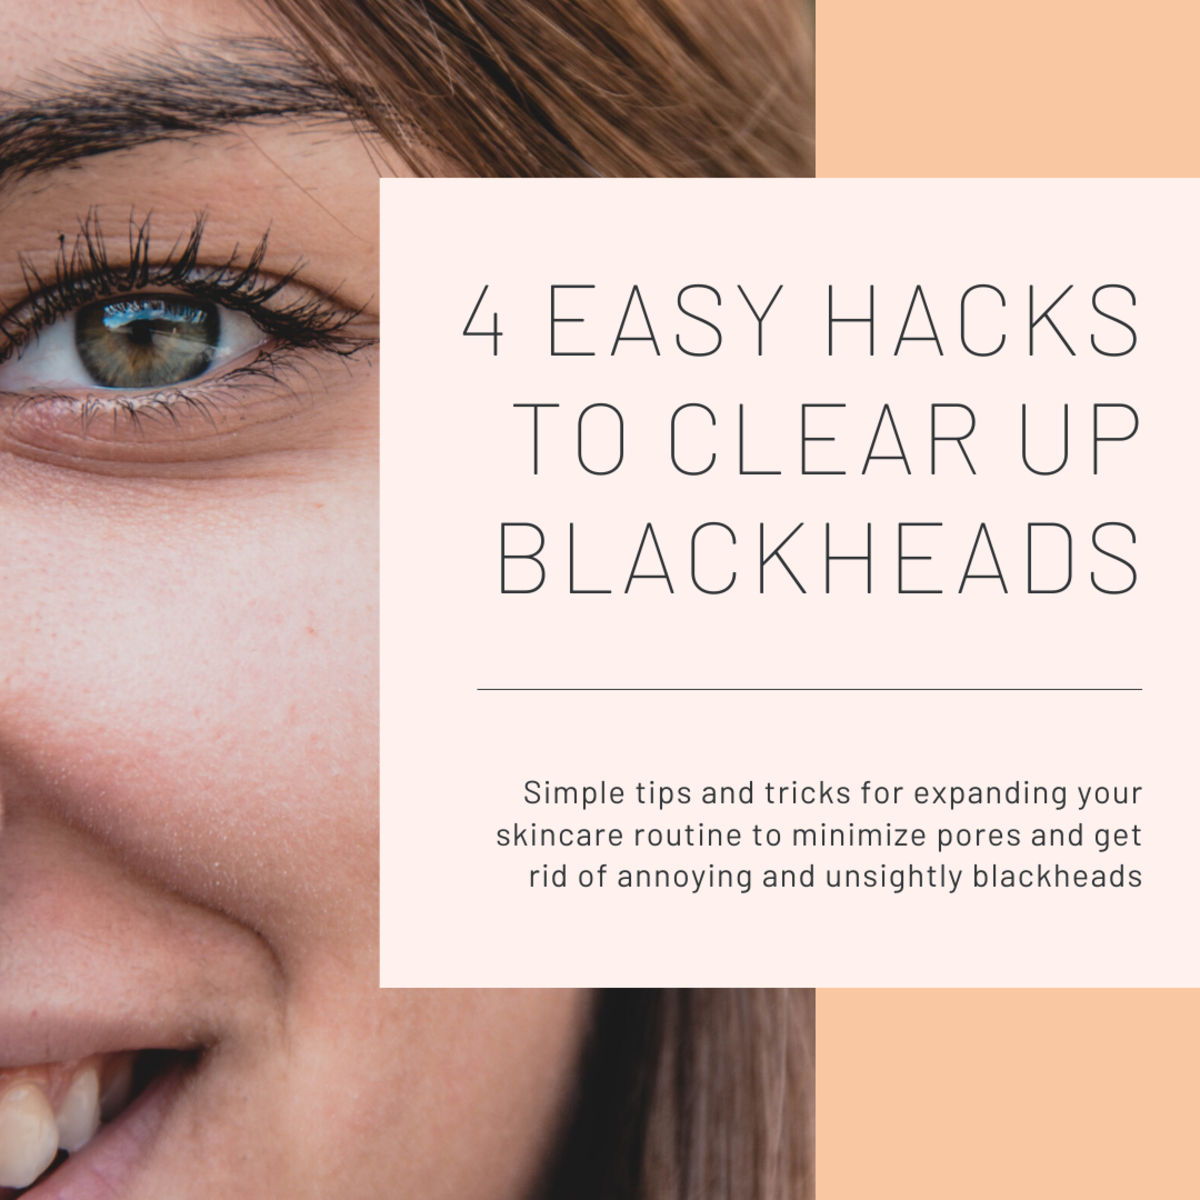 This article will break down some tips and tricks I've learned over the years to minimize your pores and get rid of blackheads.